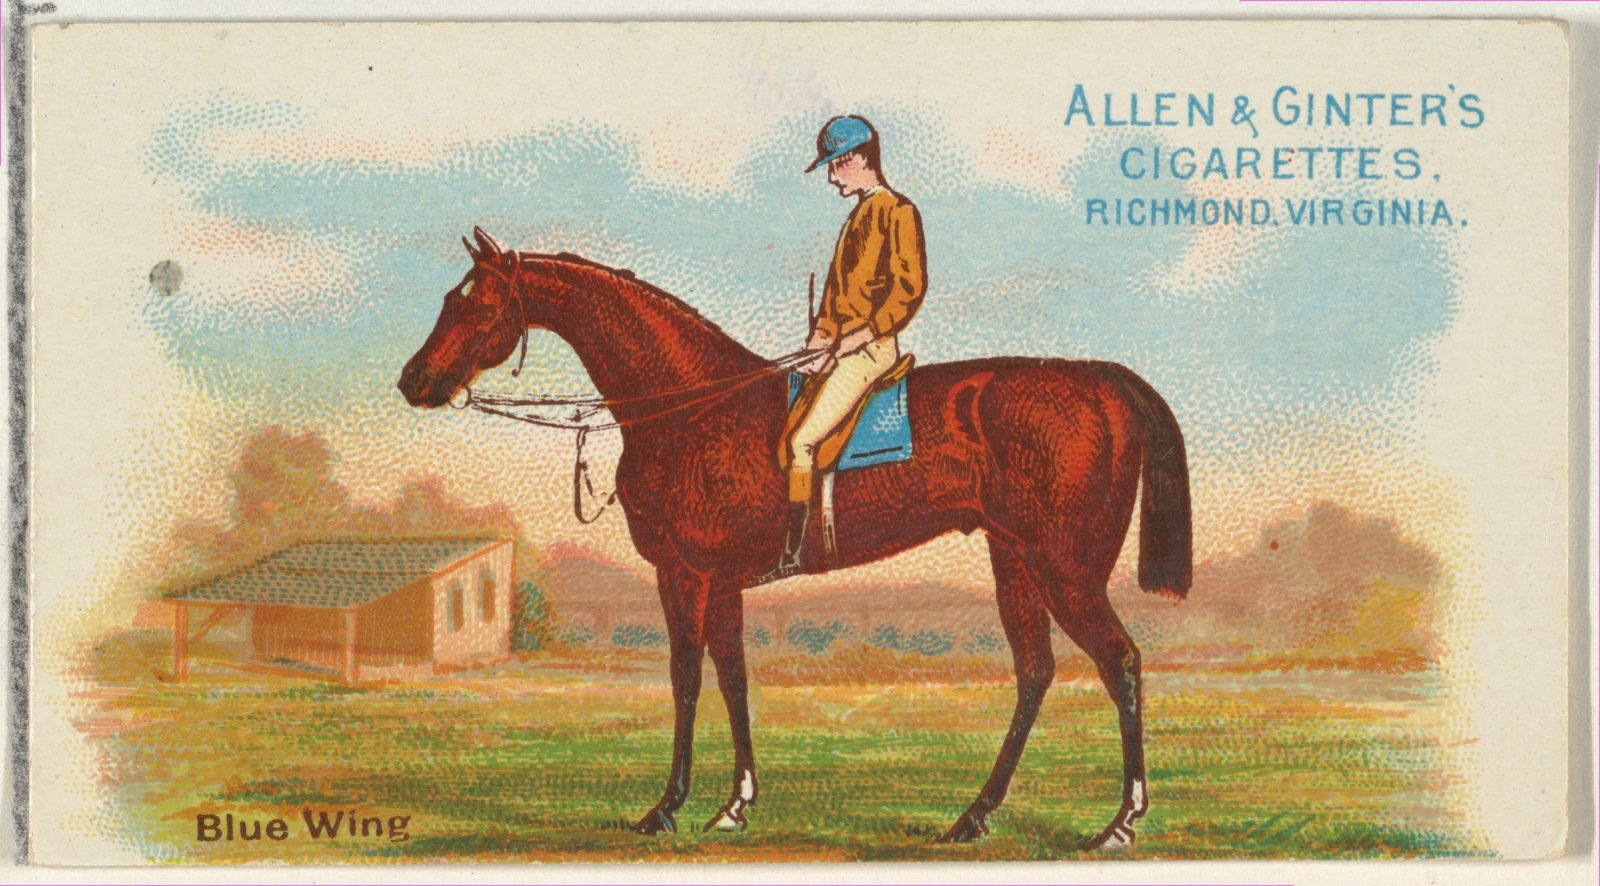 Blue Wing, from The World's Racers series (N32) for Allen & Ginter Cigarettes